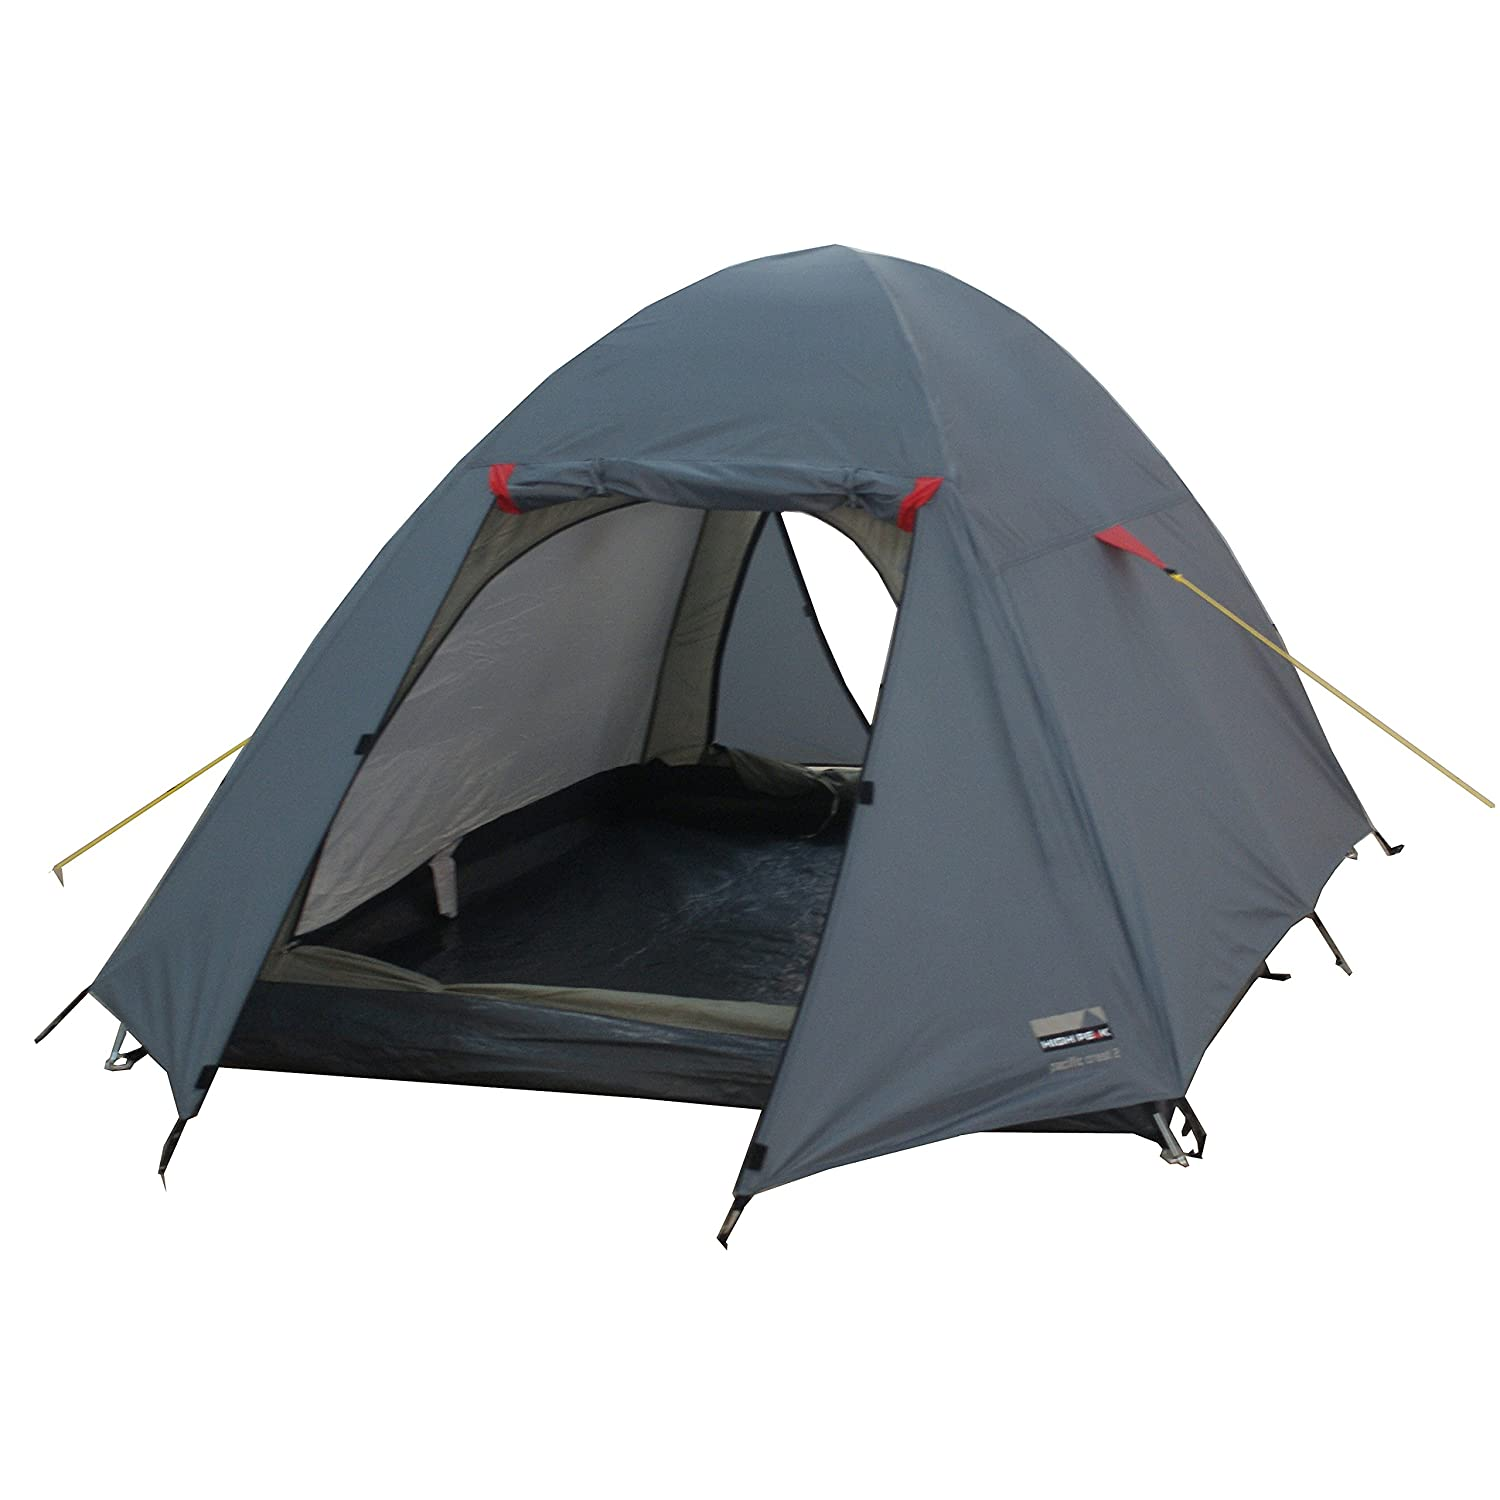 High Peak Outdoors Pacific Crest Tent (2-Person) by High Peak Outdoors   B00IFF082M